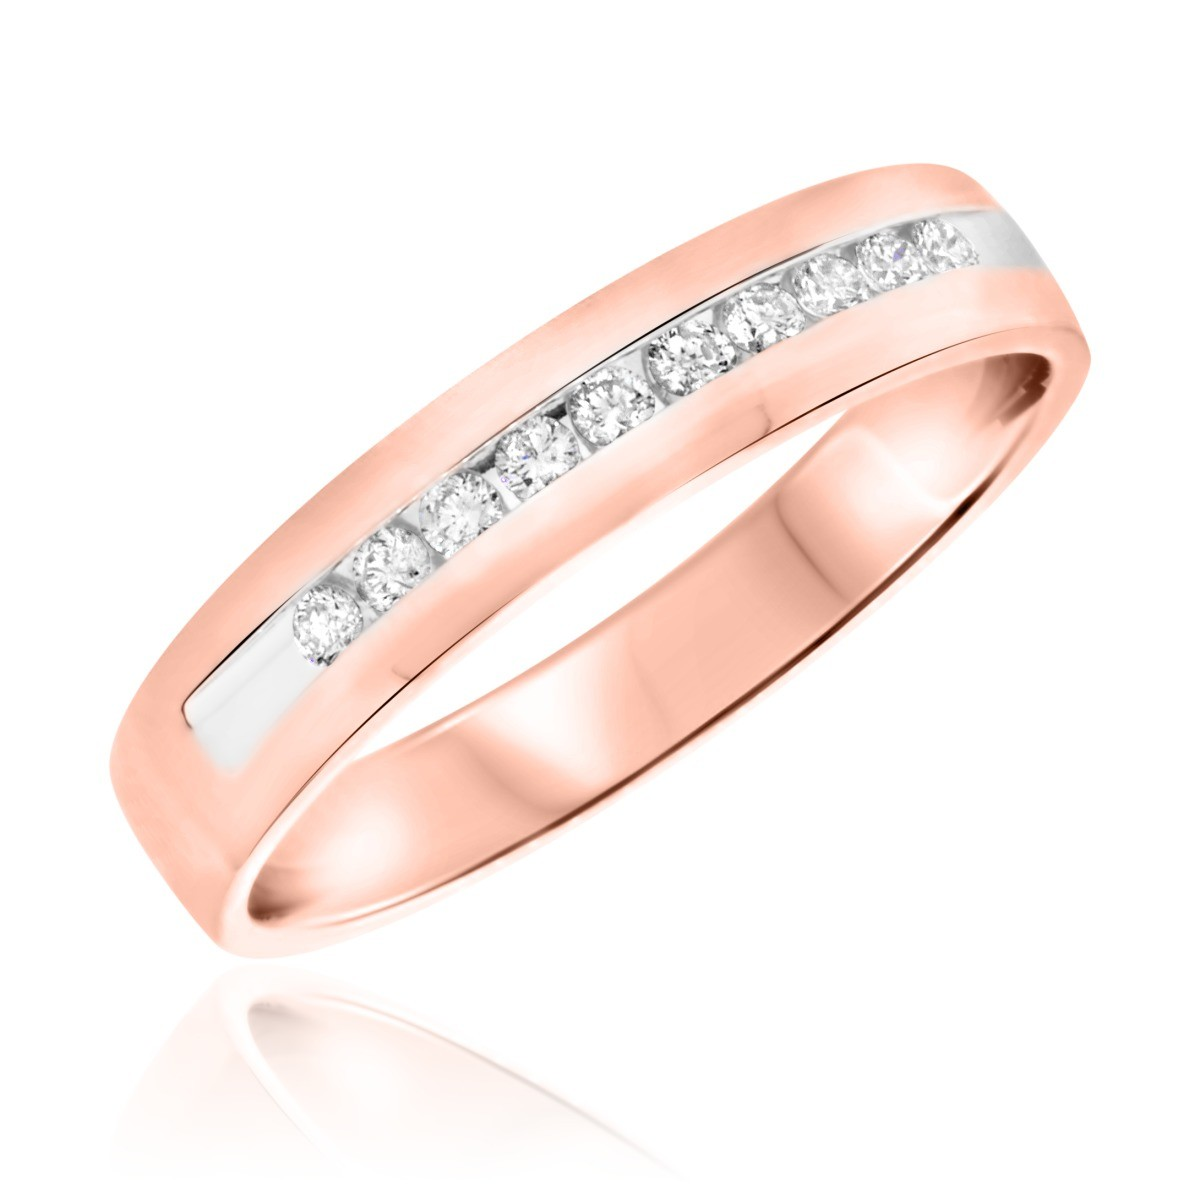 1/4 CT. T.W. Diamond Men's Wedding Band 14K Rose Gold